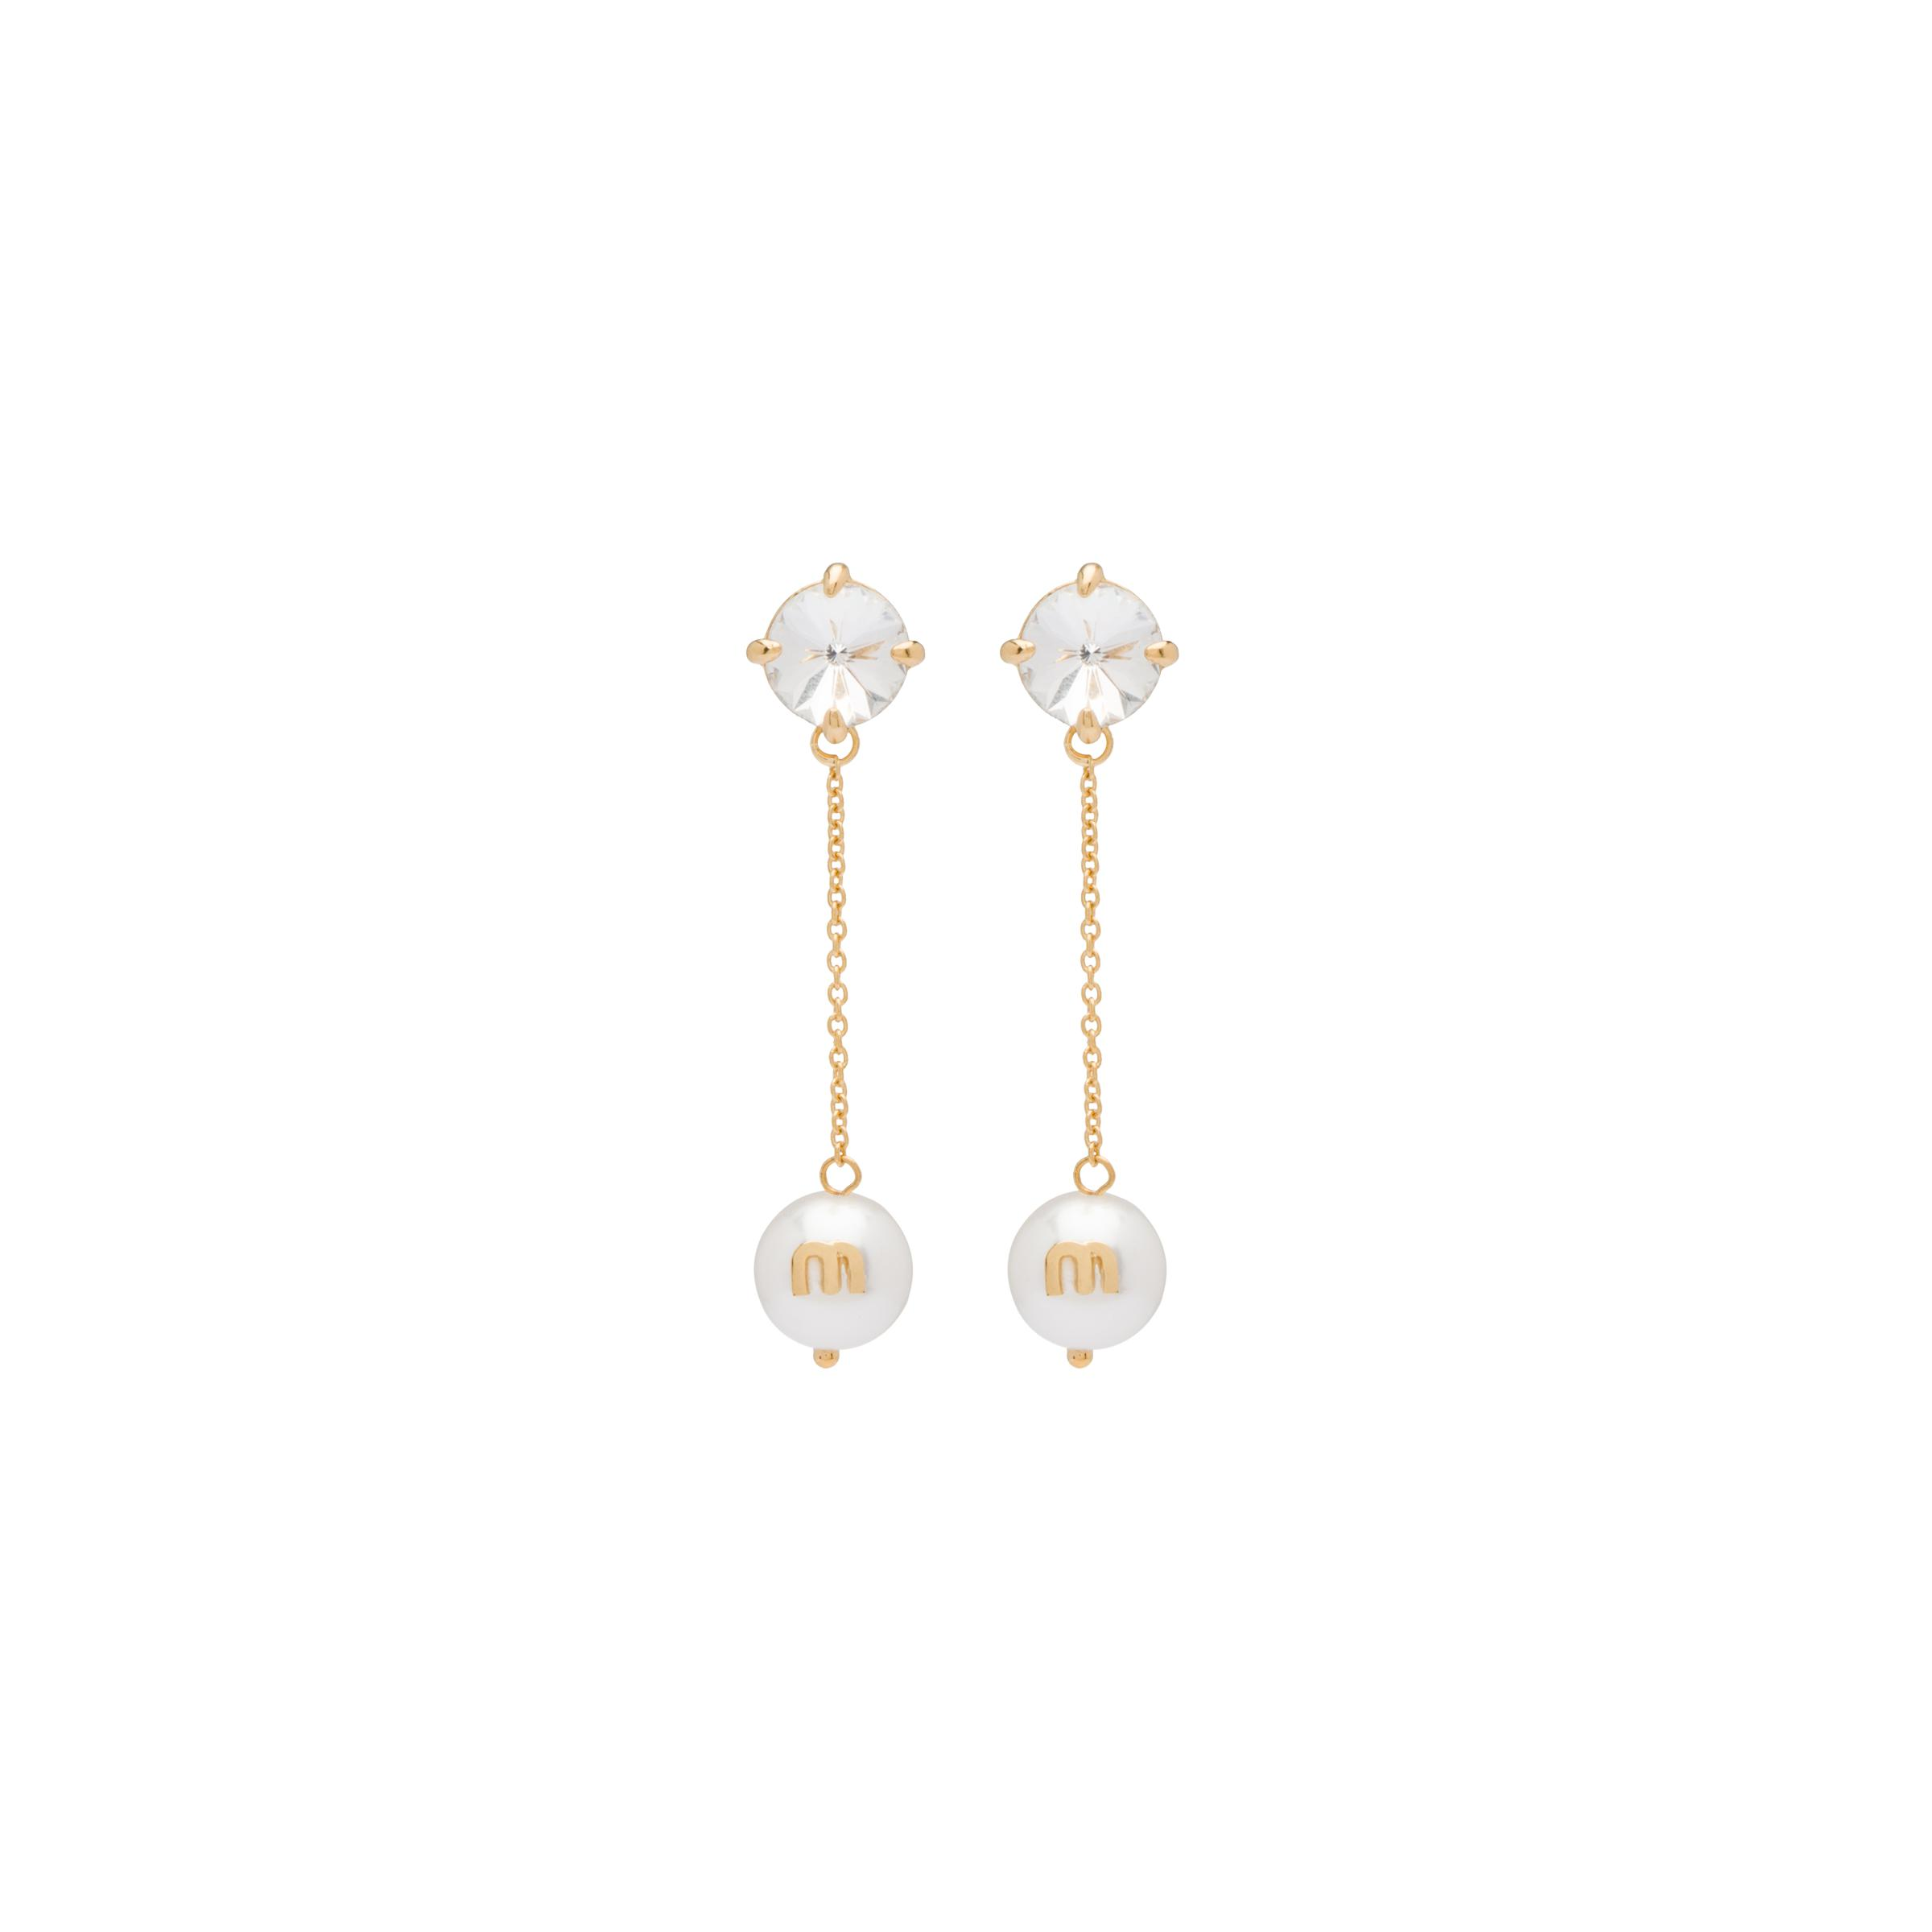 Pendant Earrings With Crystals And Pearl Women Gold / White / Crystal